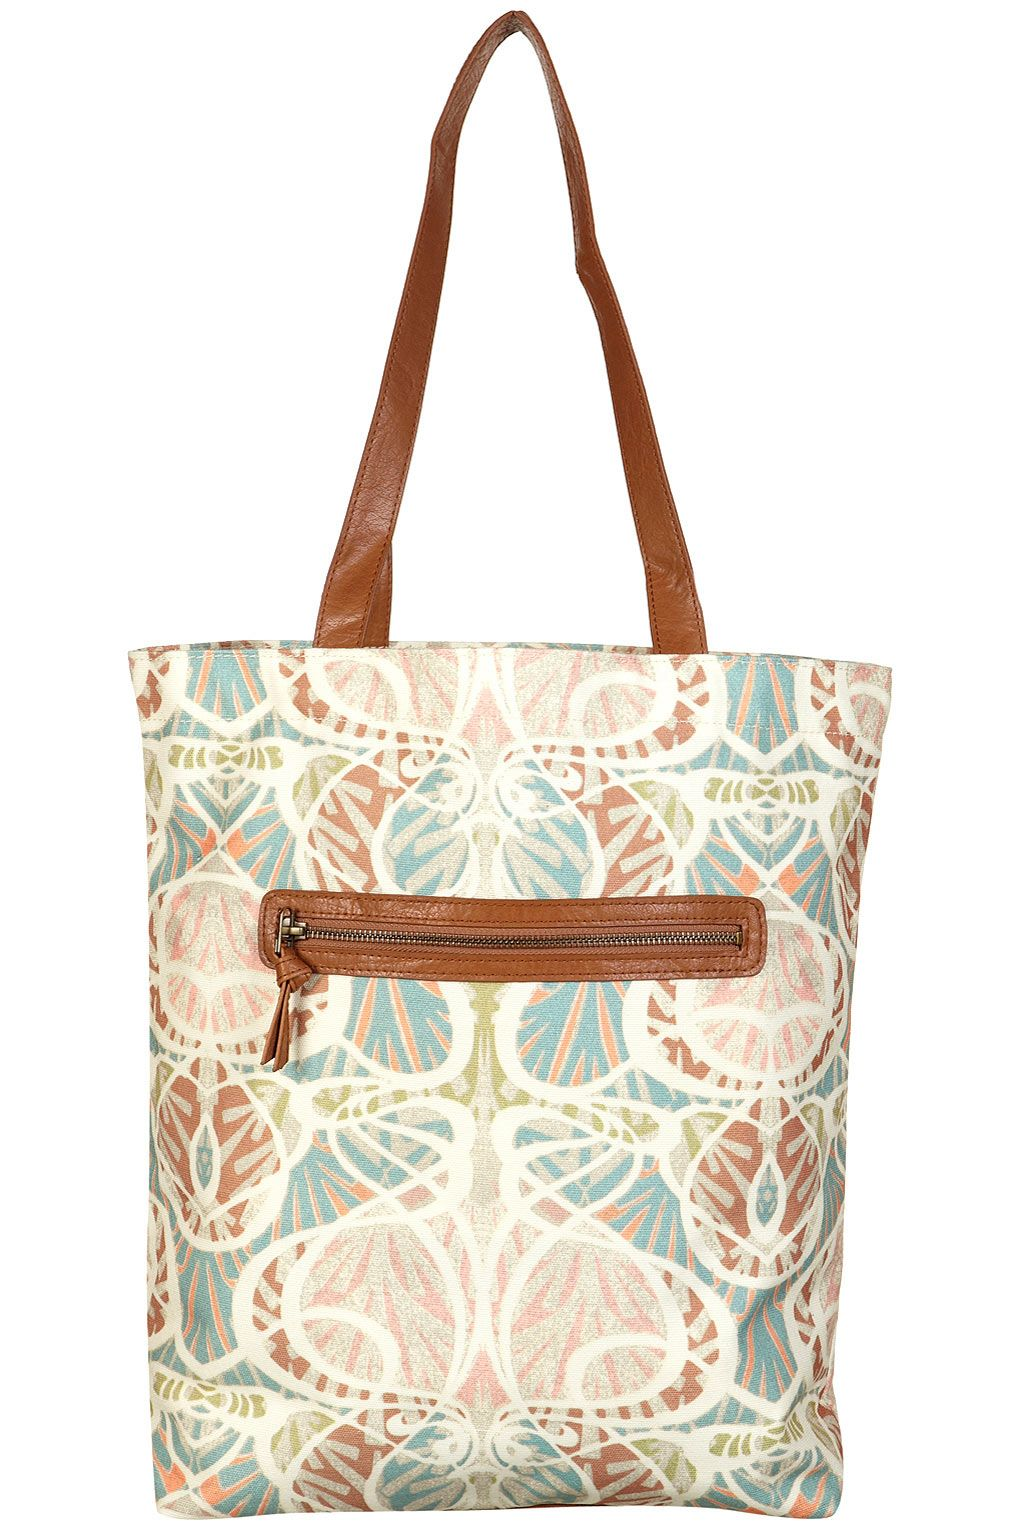 NOUVEAUX PRINTED SHOPPER Price:$32.00 from TopShop